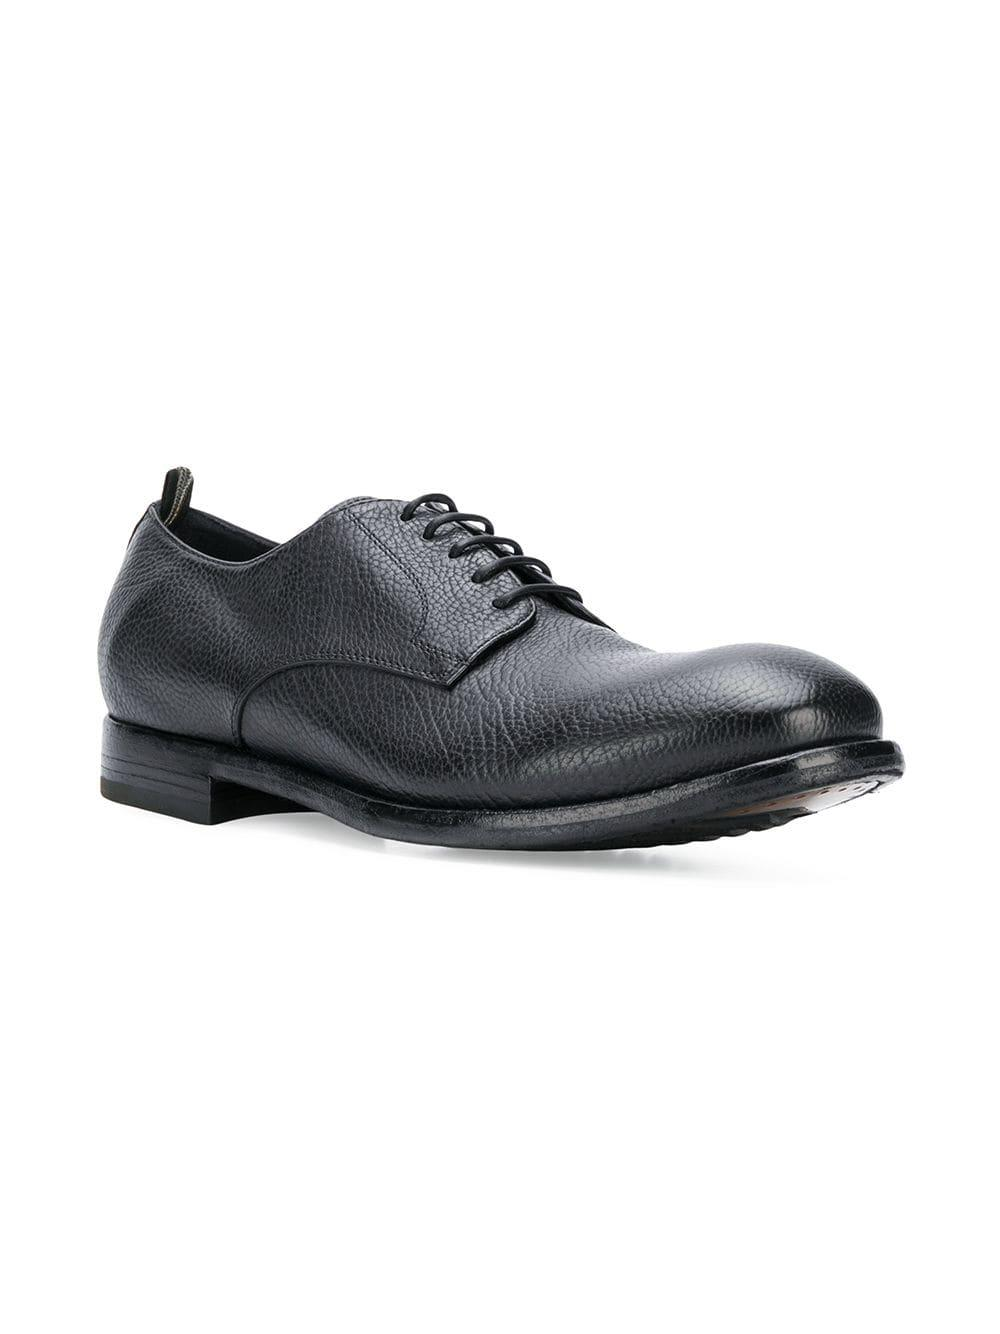 Officine Creative Leather Arbus Structured Lace-up Shoes in Black for Men